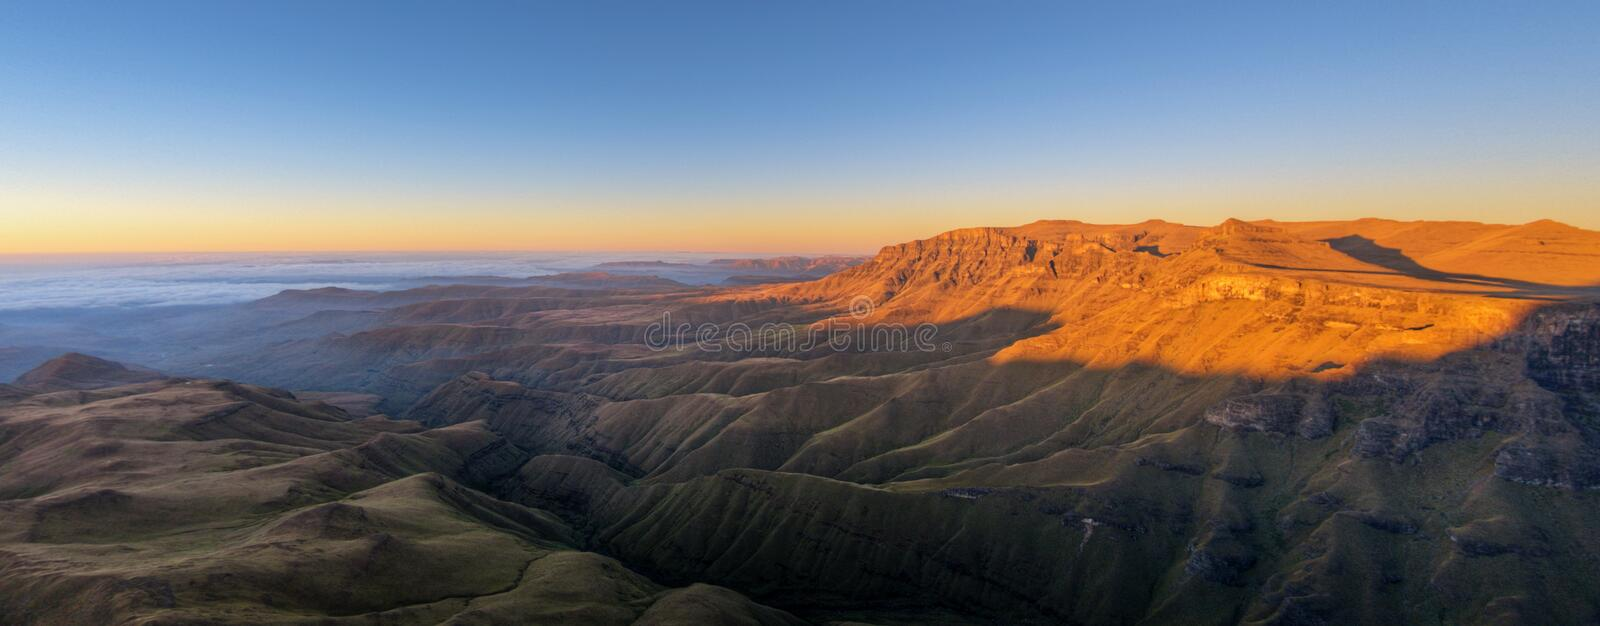 Sunrise Drakensberg, South Africa. Sunrise from the top of the Drakensberg mountains is amazing royalty free stock photography